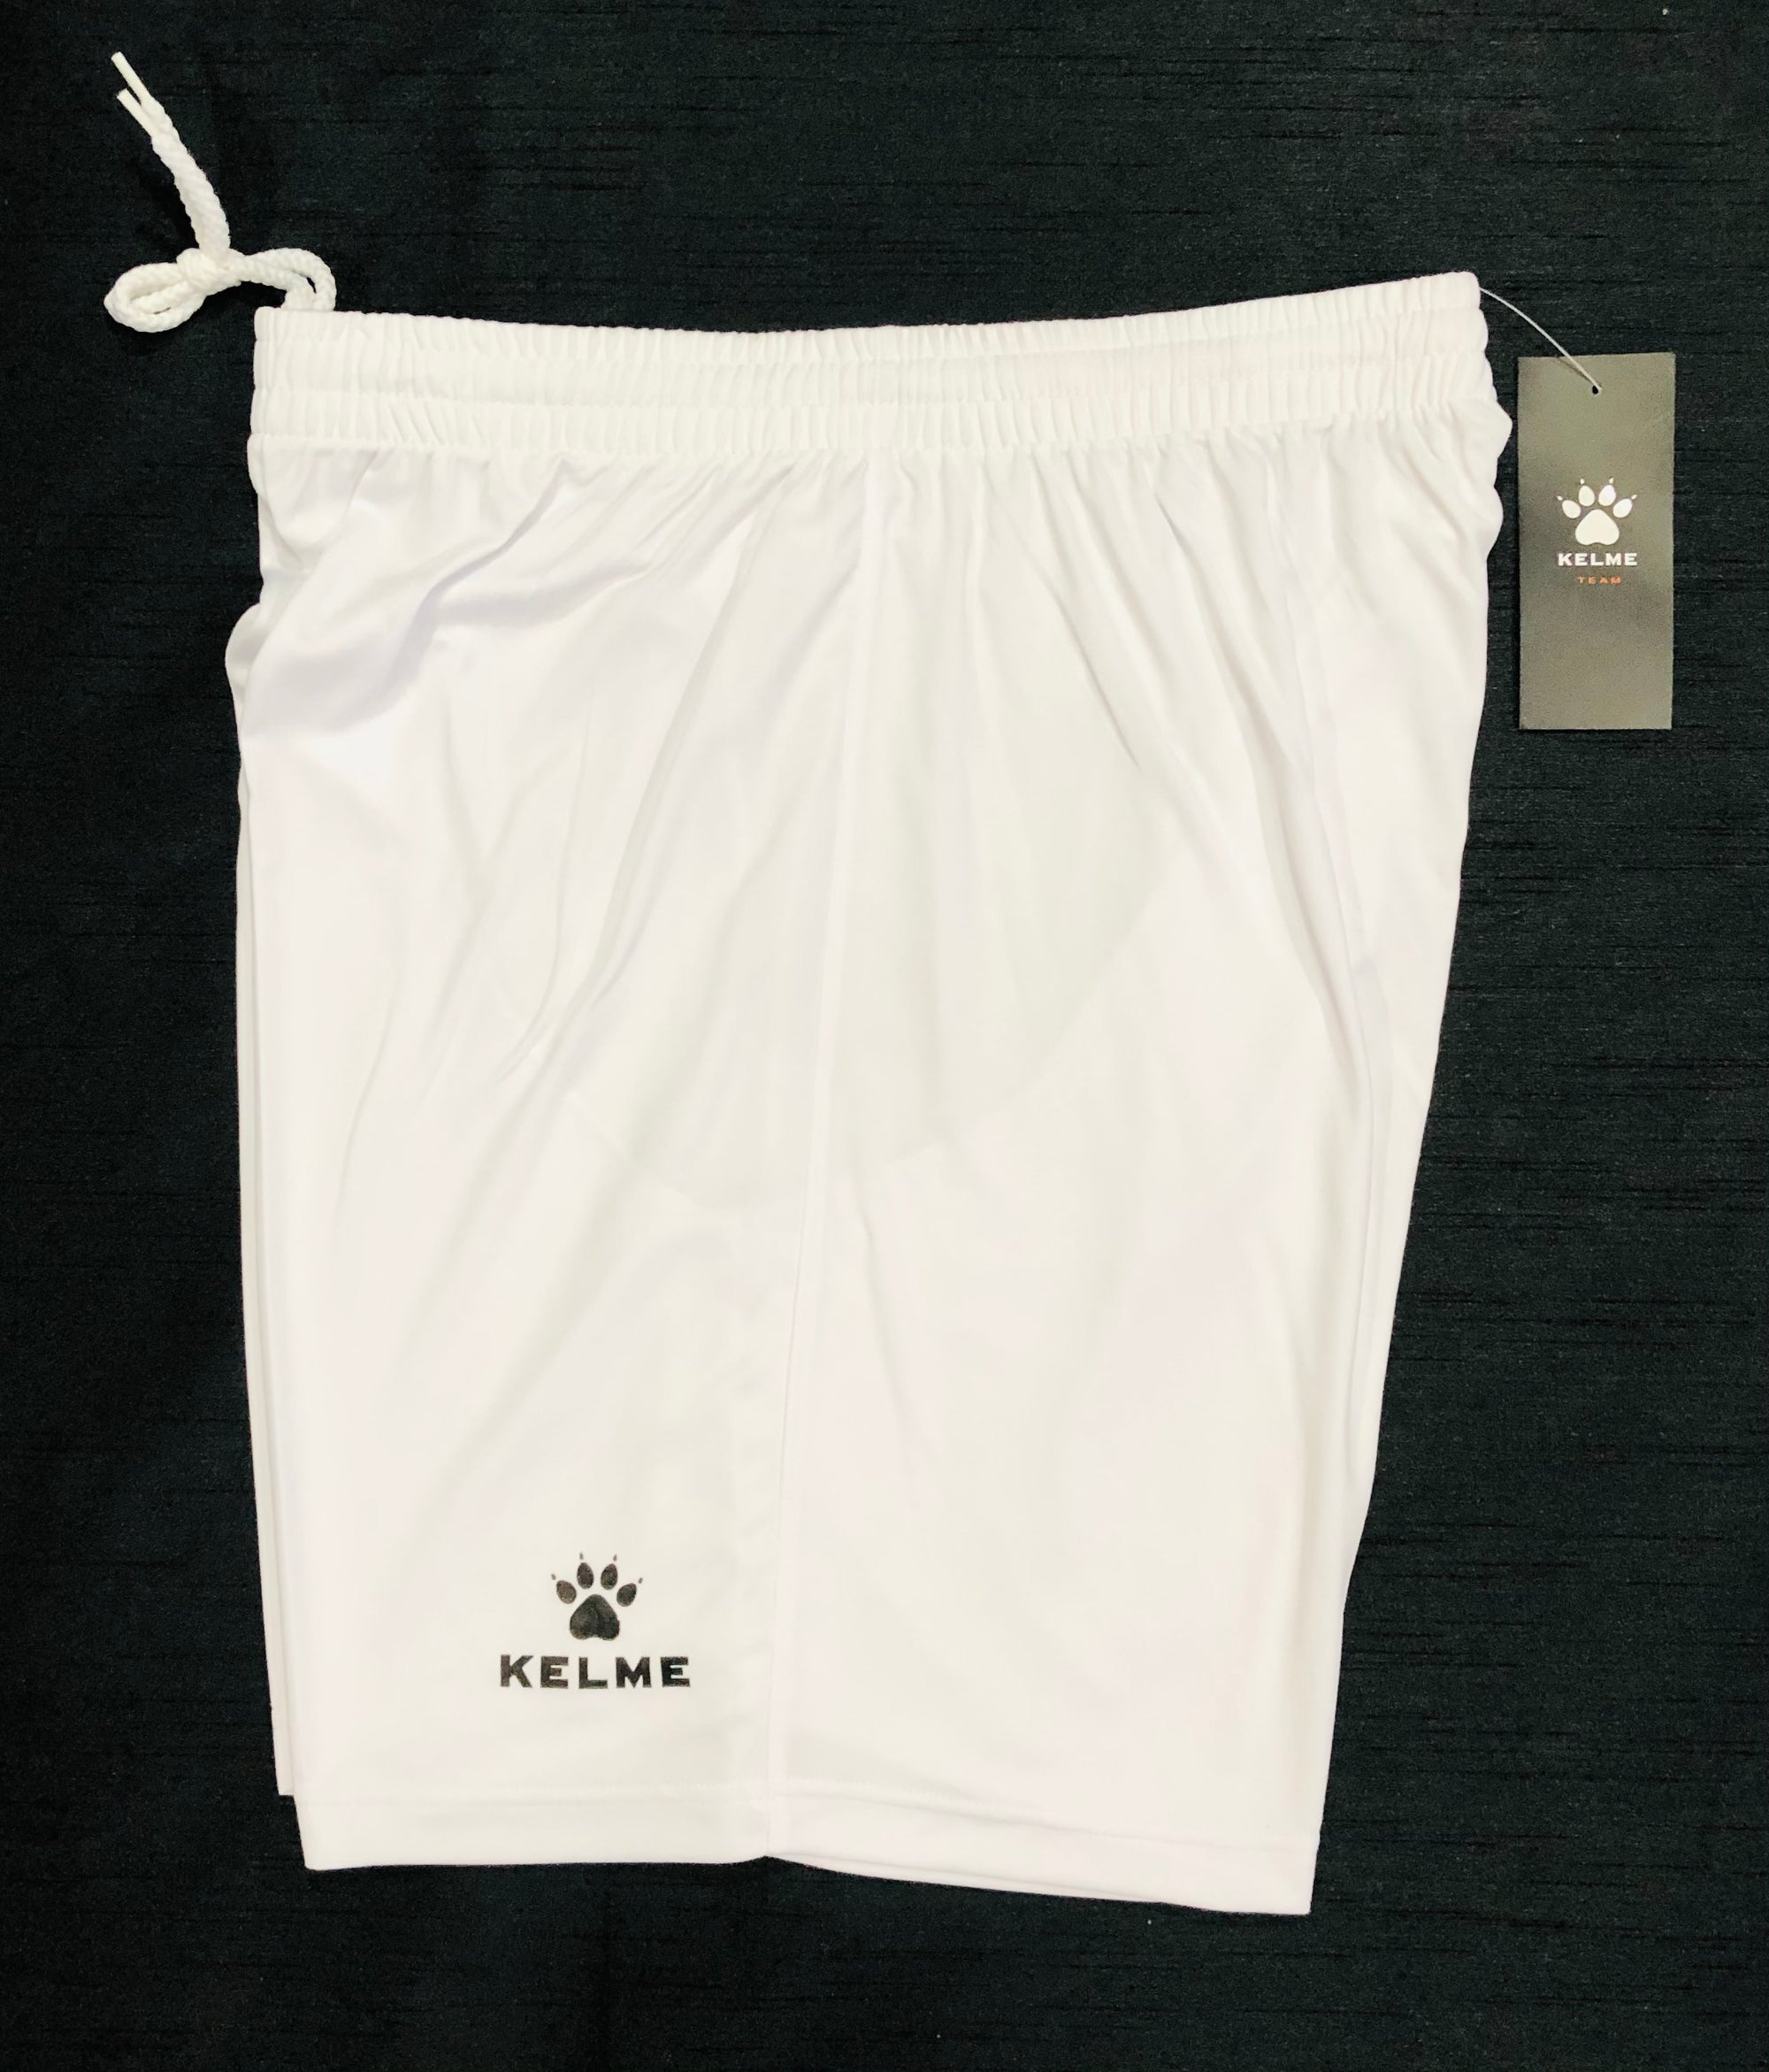 Kelme Adult Short - White